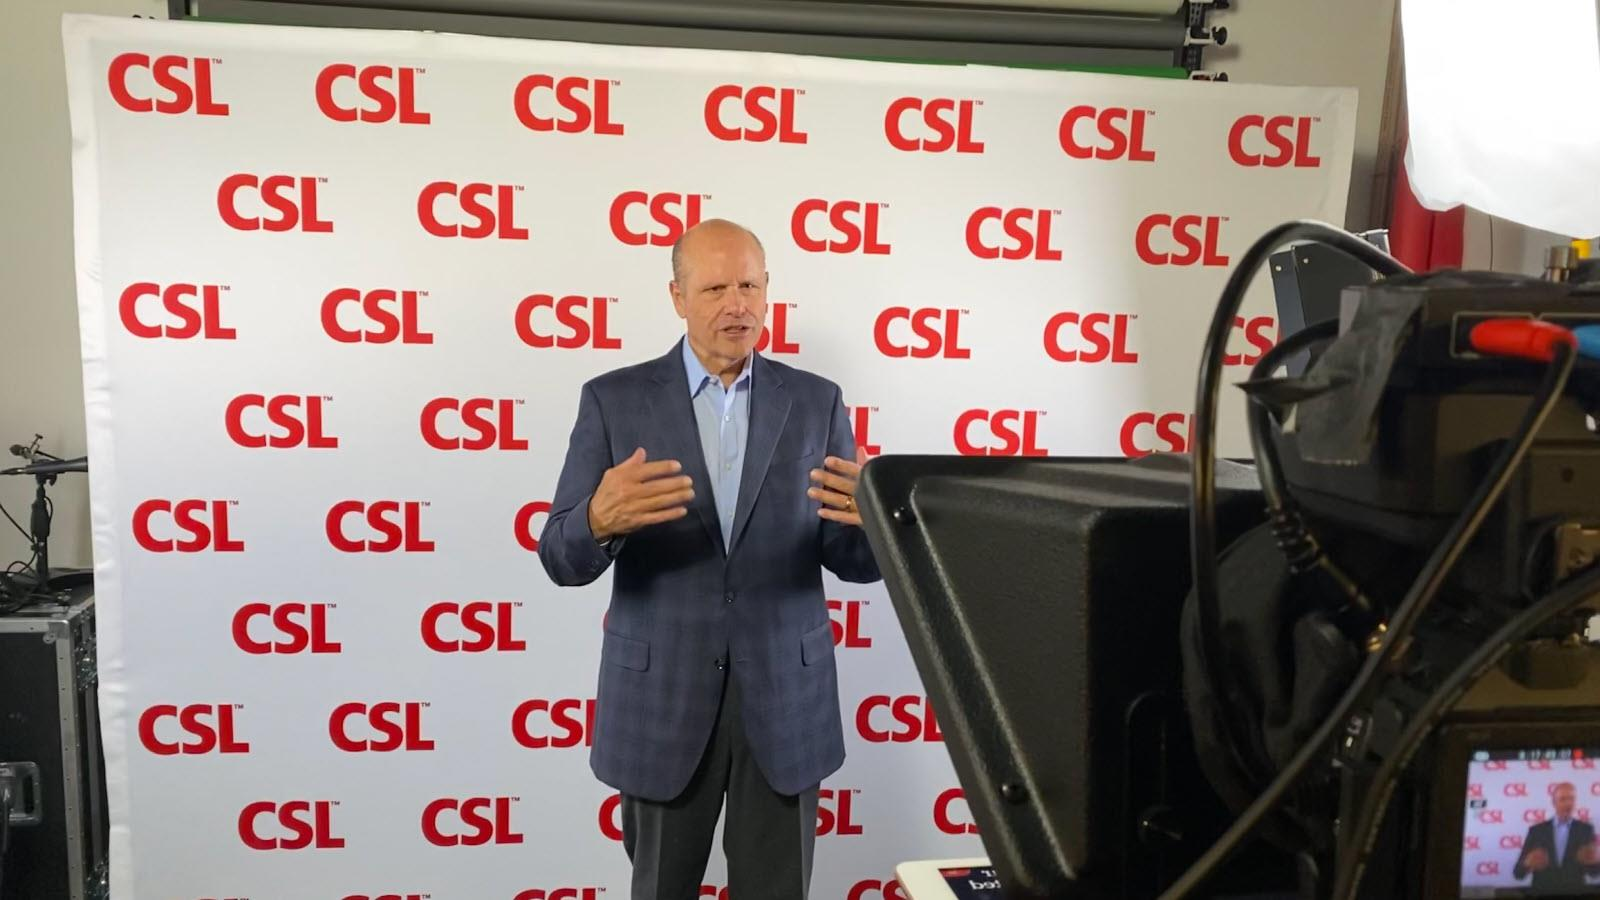 CSL Limited CEO Paul Perreault records a video for employees in the King of Prussia, Pennsylvania studio.